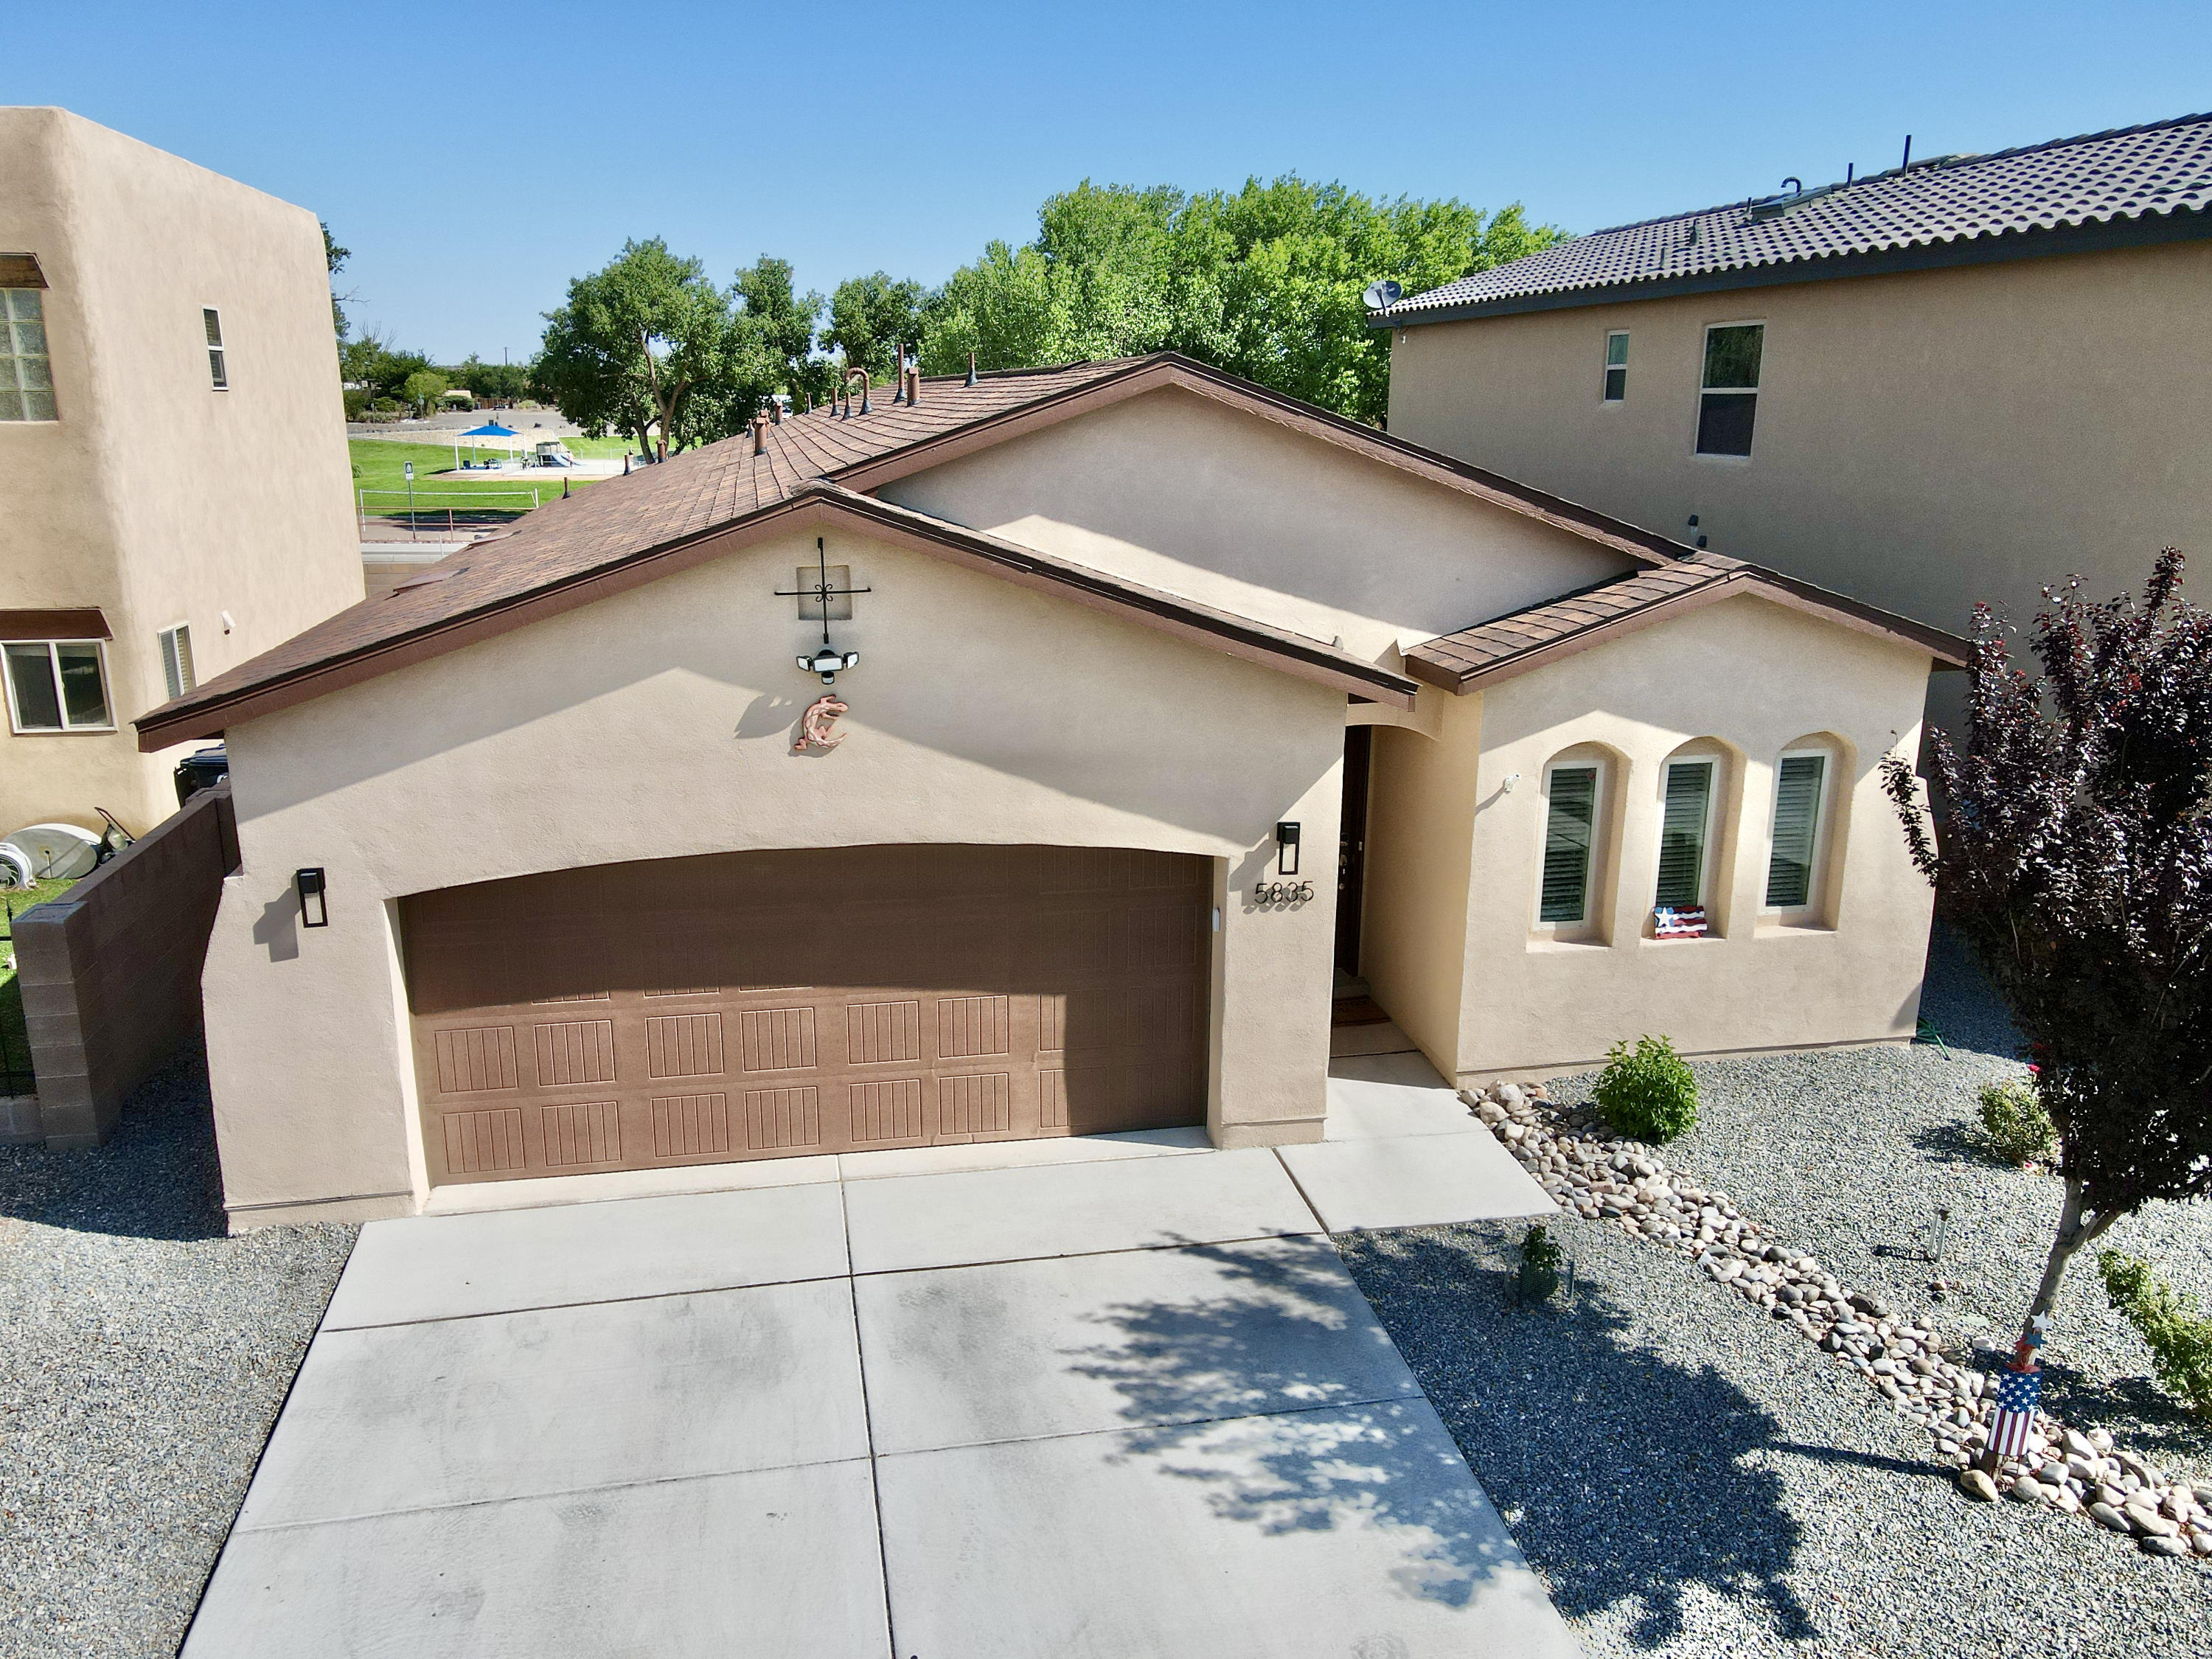 Newer 3 bedroom, 2 bath home, well maintained.  Great location, close to park,  Located in Paradise Hills Civic neighborhood.  Back and front yard landscaped, easy to maintain.  Gas log fireplace, Granite Counter tops, Refrigerated Air, 2 car garage. Ready to Move in.